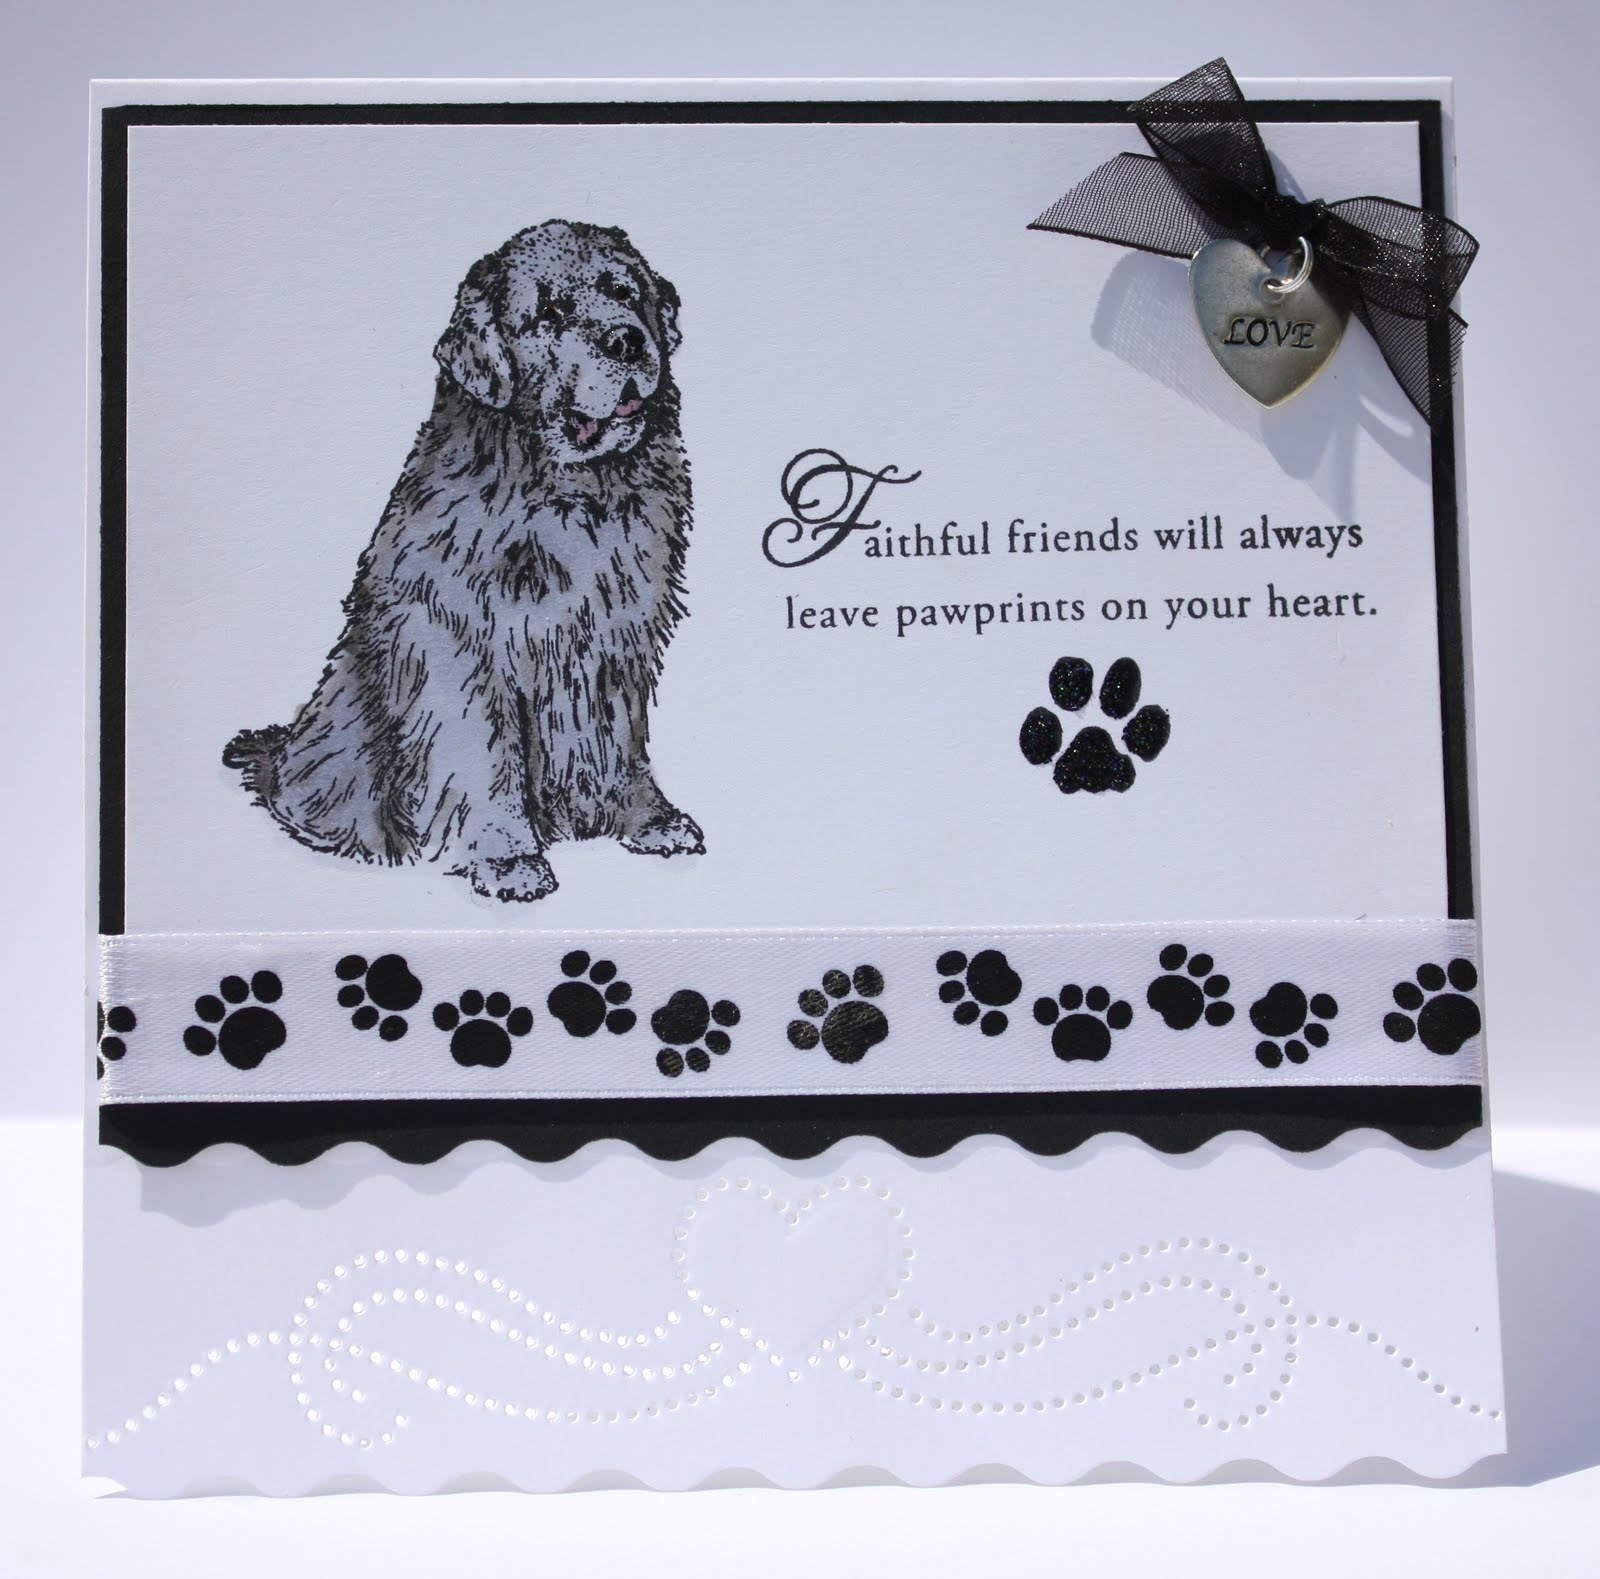 Loss Of Pet Quotes For Dogs: Thimbles, Bobbins, Paper And Ink: Faithful Friends Leave